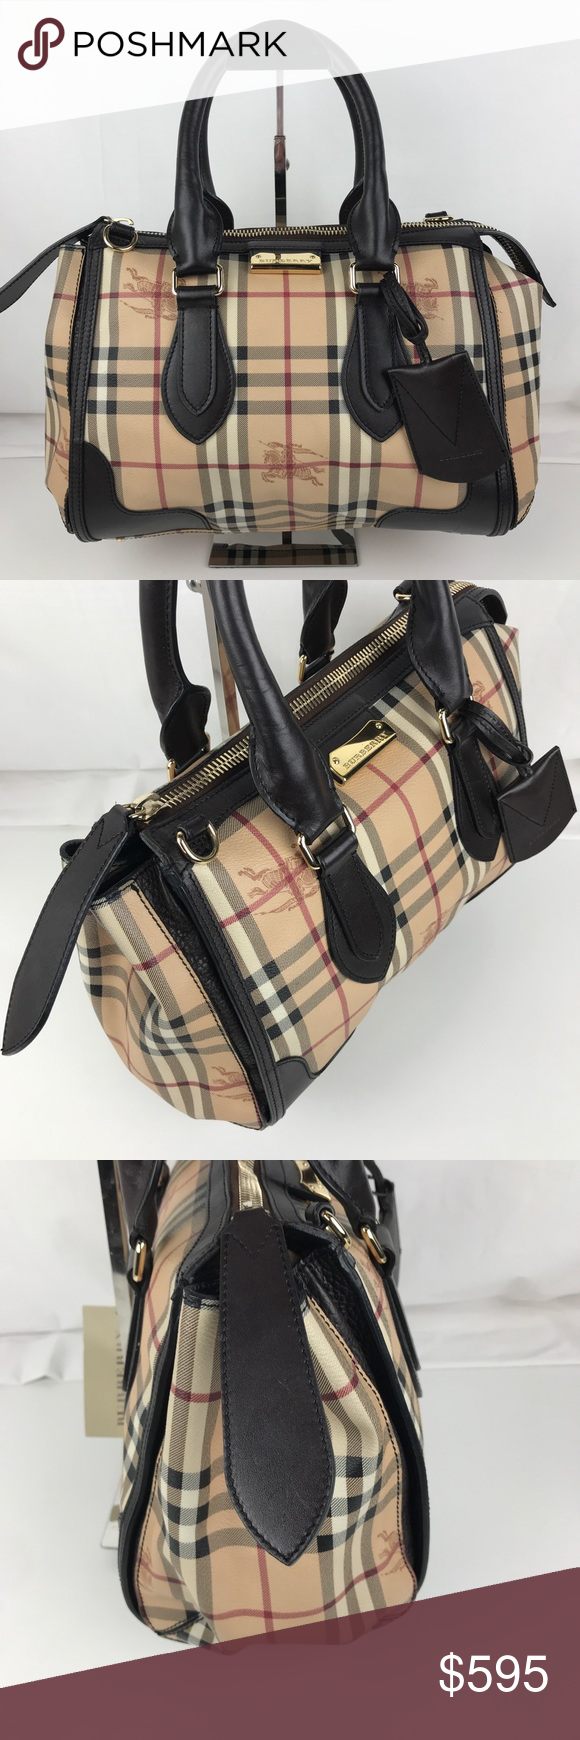 19a8cad124d2 Burberry Plaid Gladstone Chocolate Tote 3870759 Authentic Burberry Style  3870759. Gently used with Tag